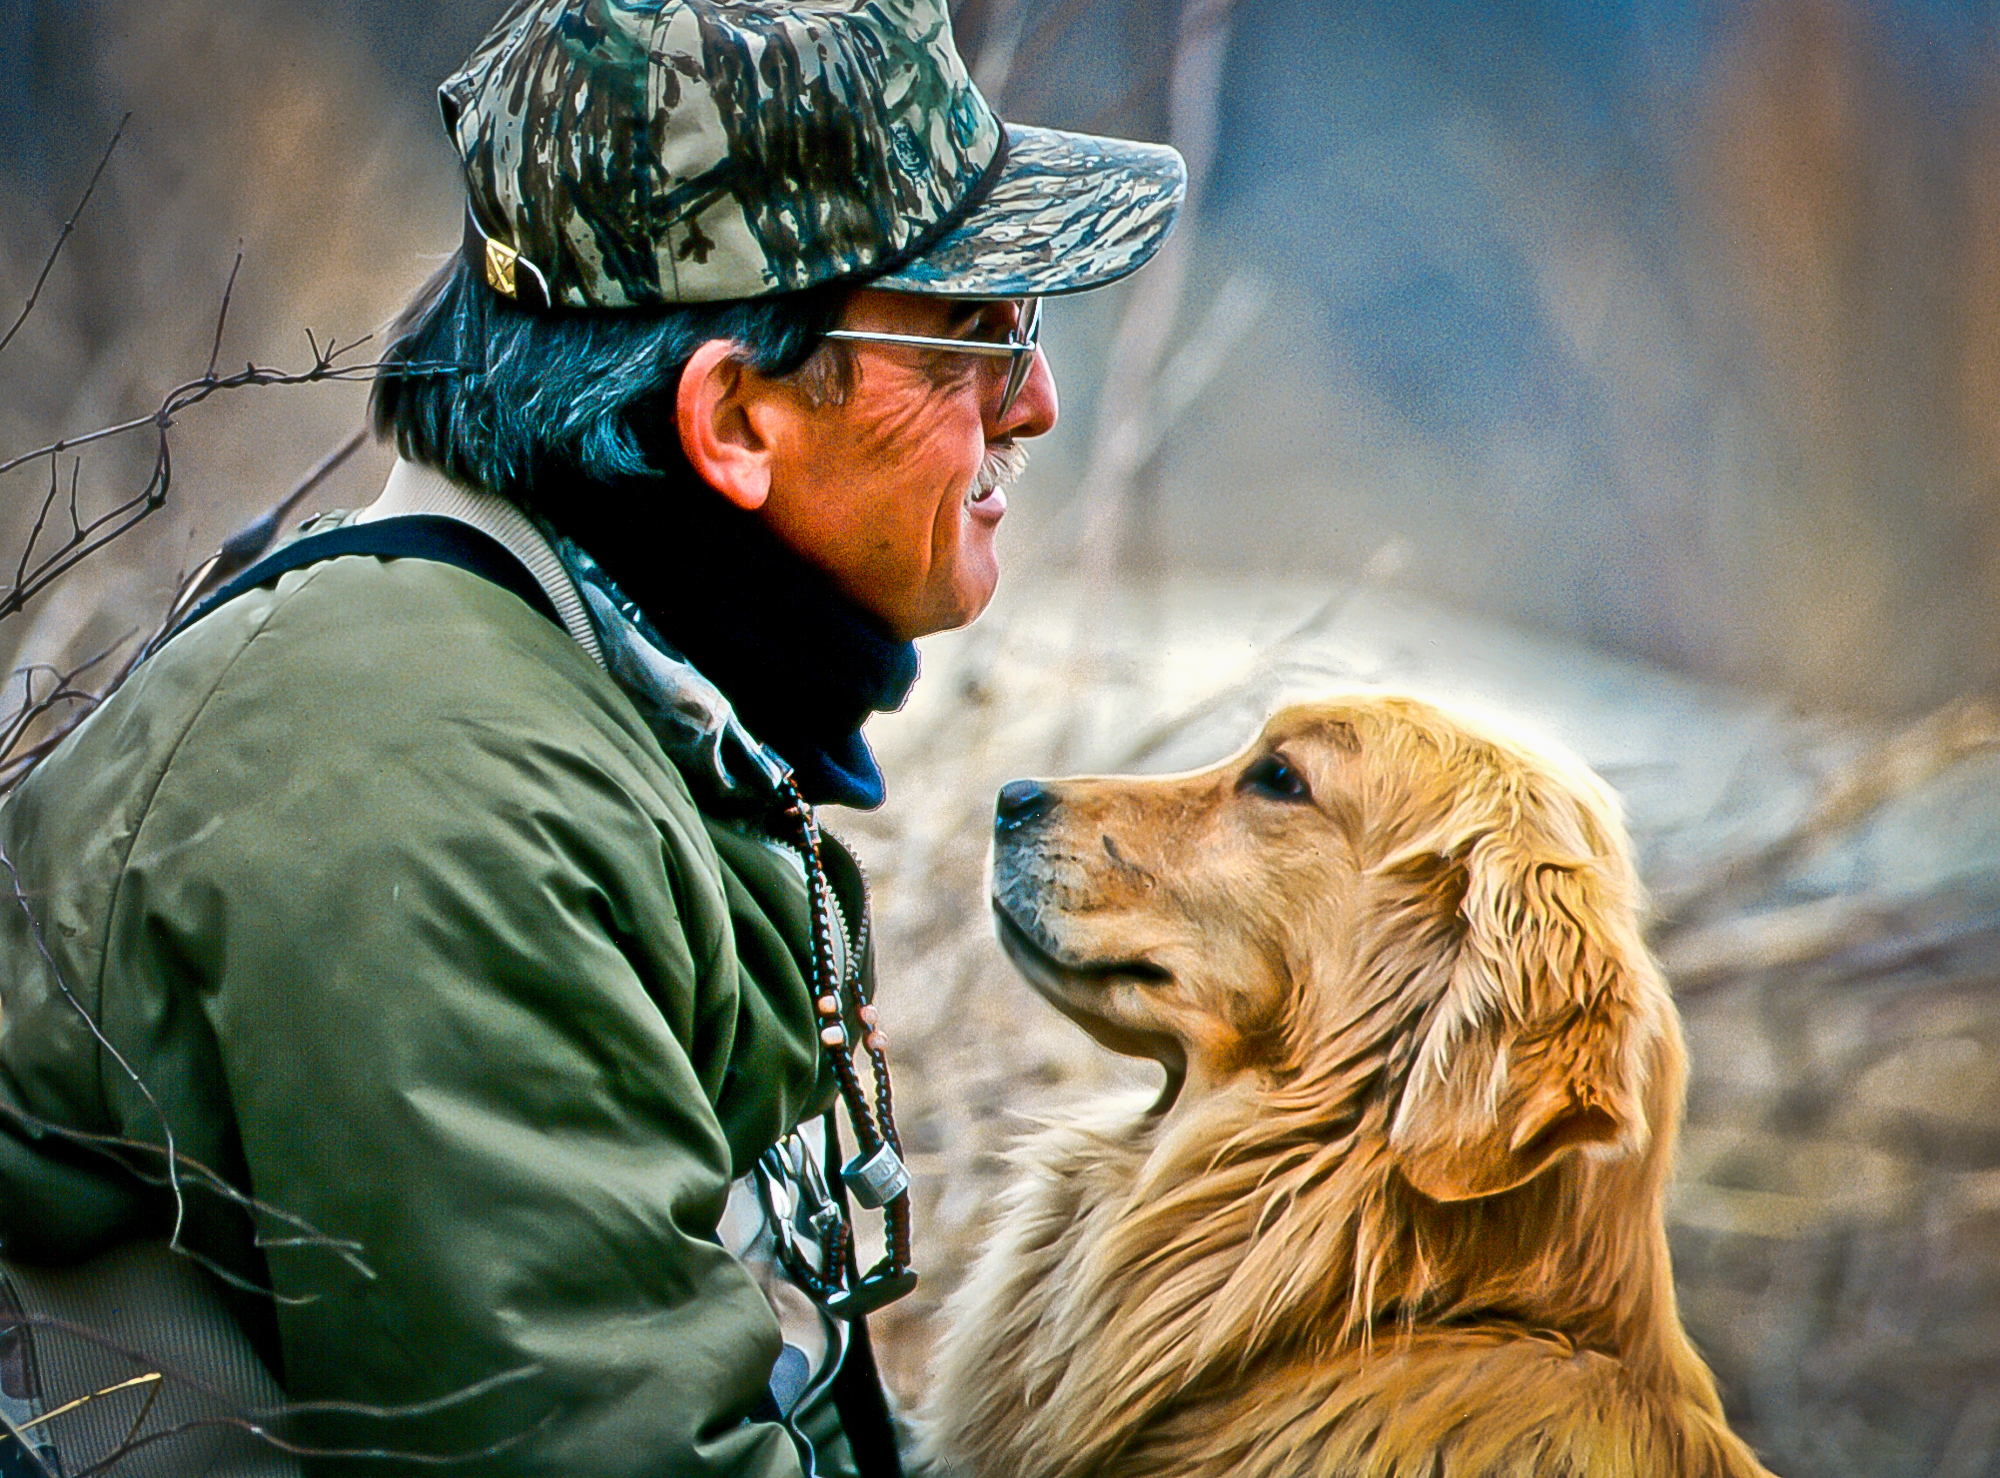 rick-meoli-commercial-photographer-outdoor-animal-lifestyle-repheads-63